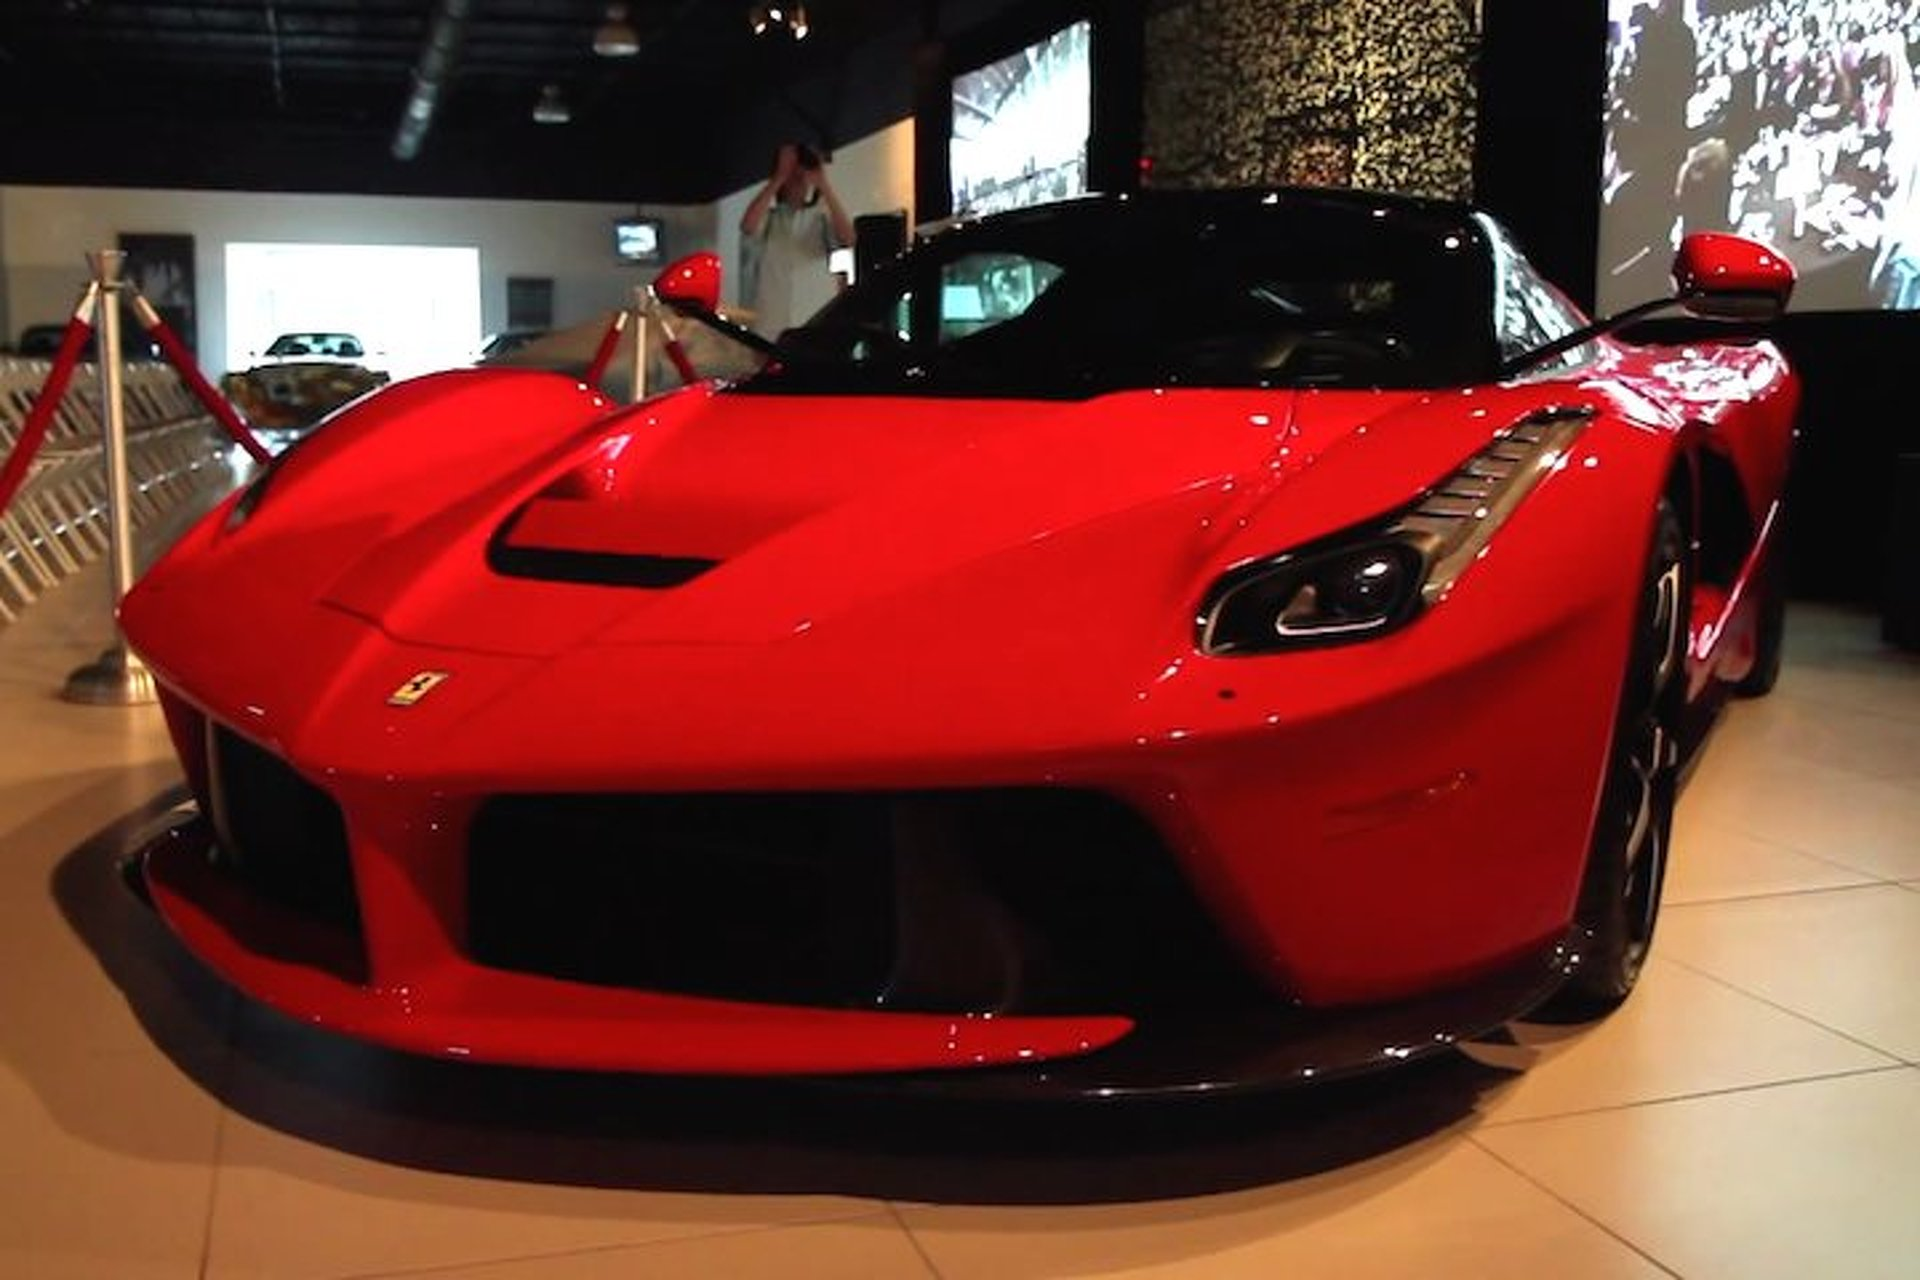 Check Out the Gorgeous Curves of the Ferrari LaFerrari